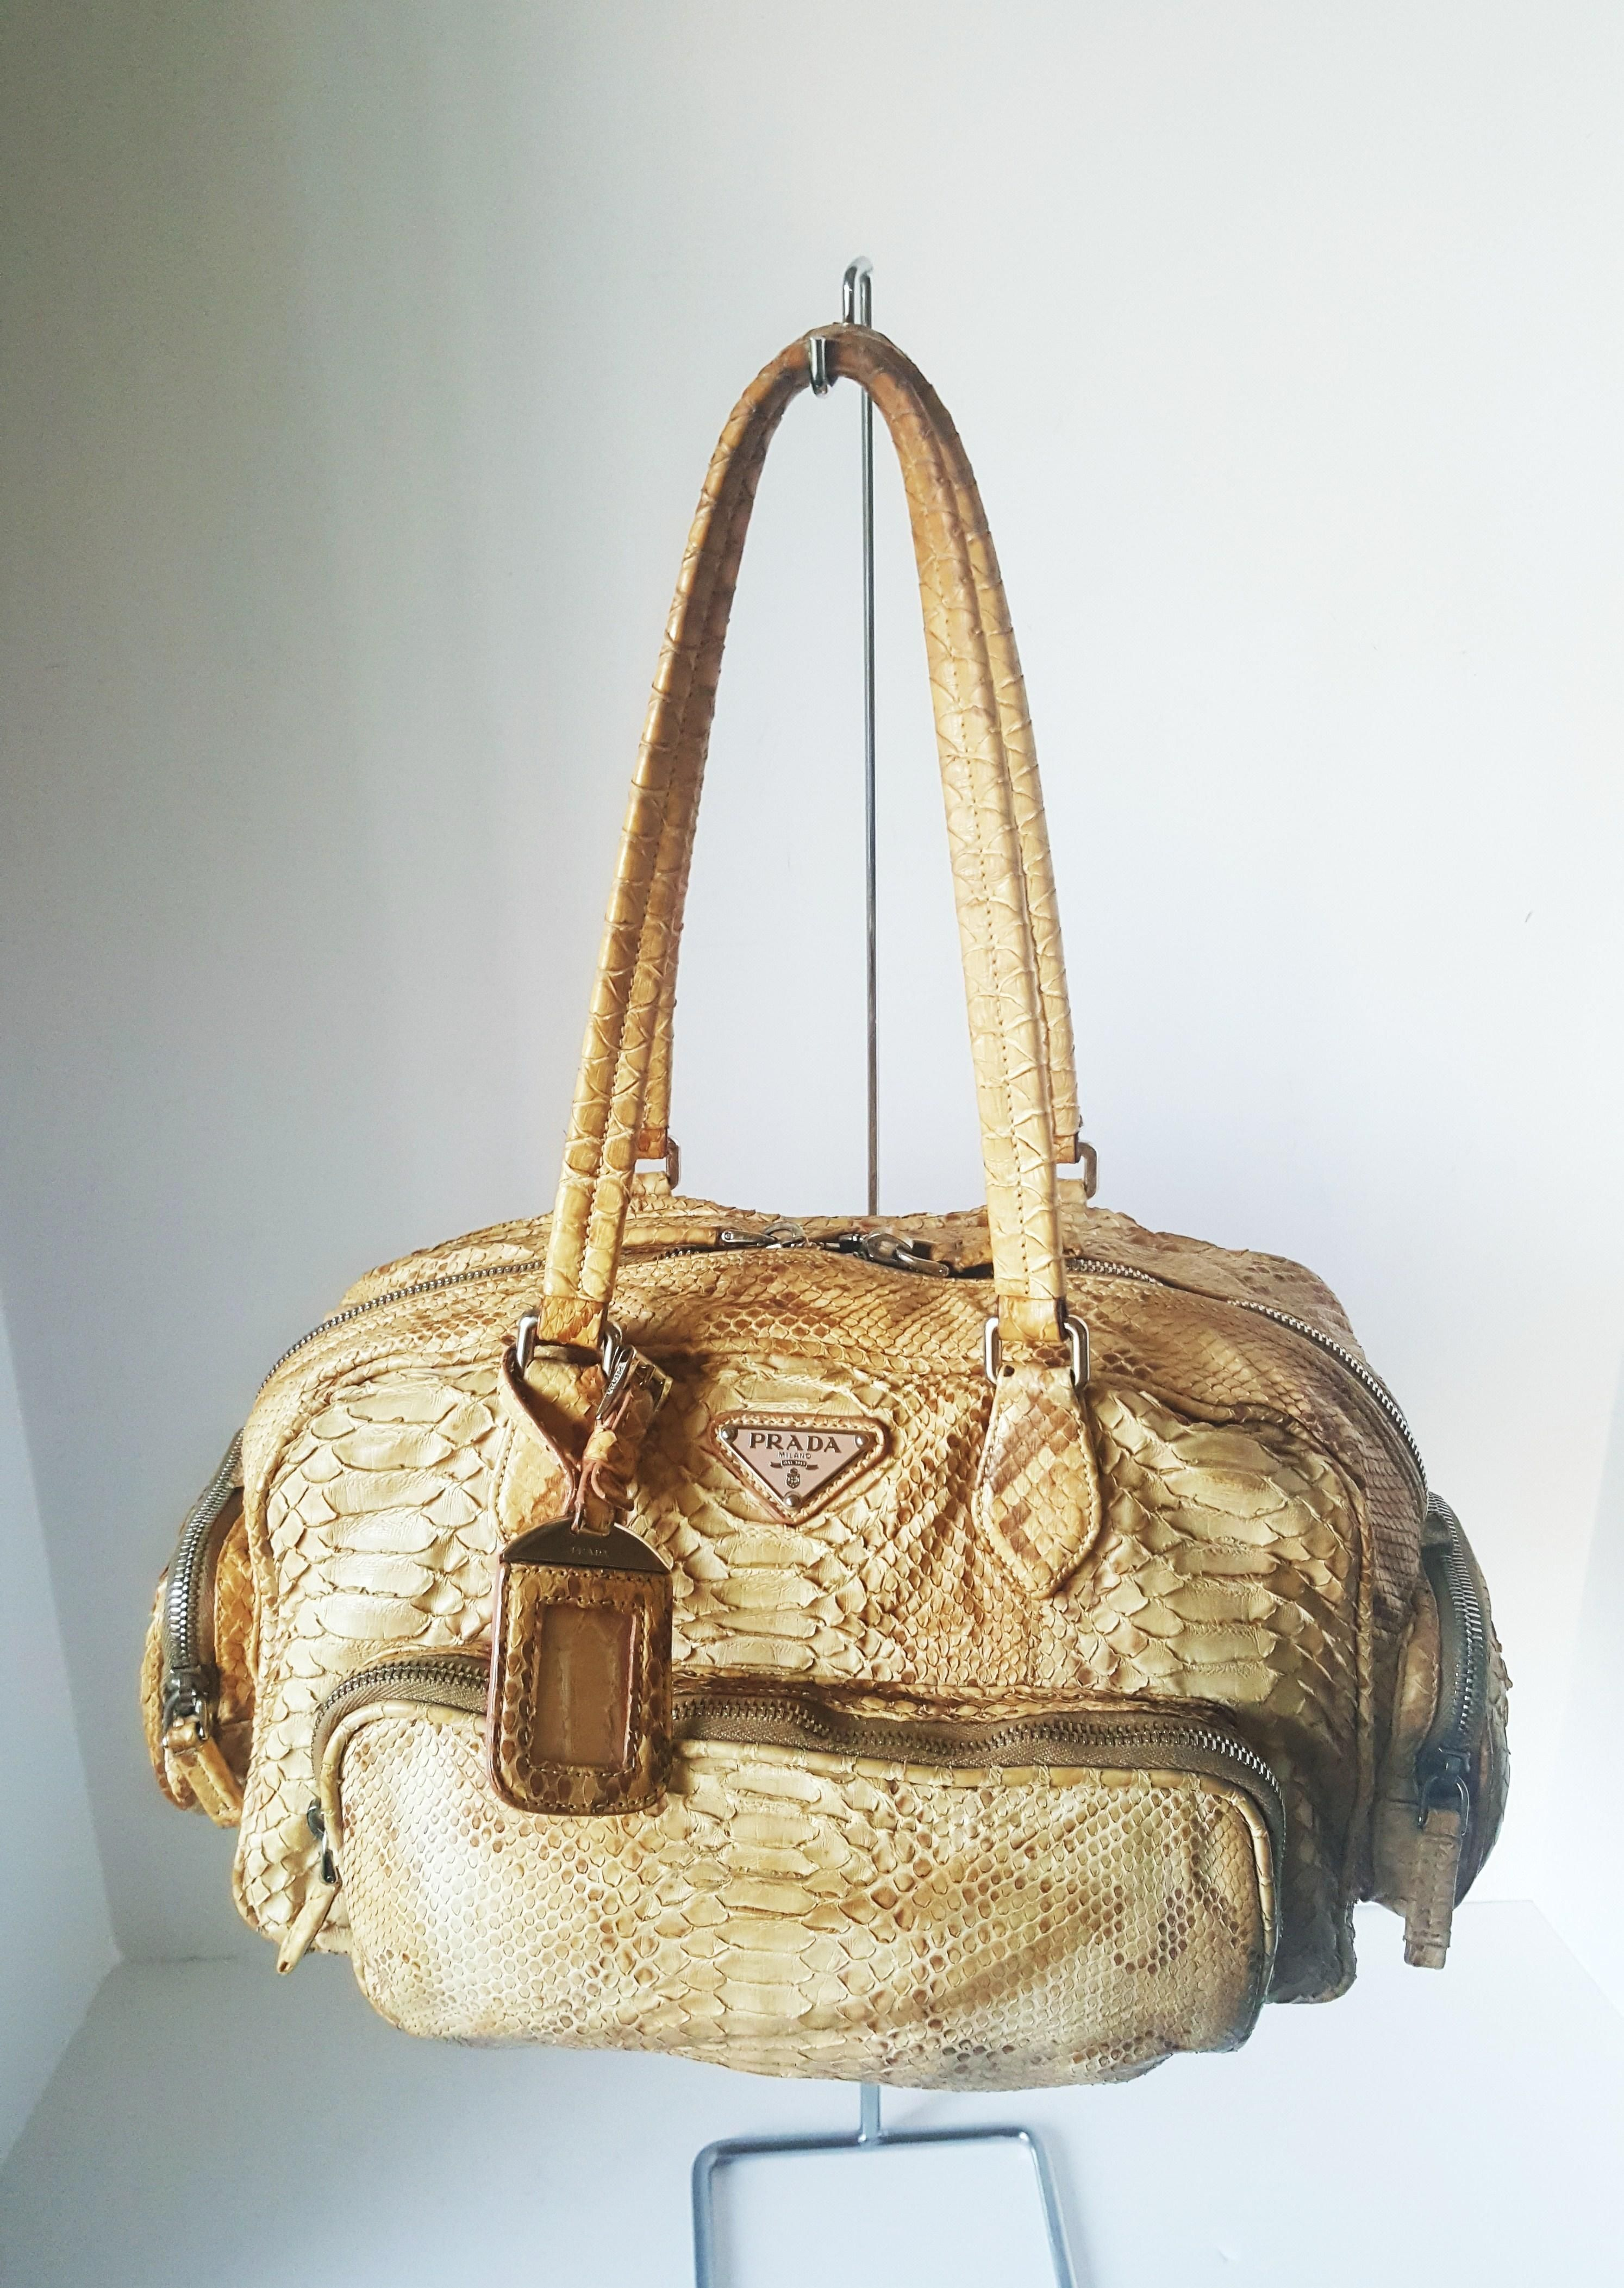 Save 66% on the Prada Limited Edition Tan Python Leather Tan Beige Satchel!  This satchel is a top 10 member favorite on Tradesy. f661c98b46e2e